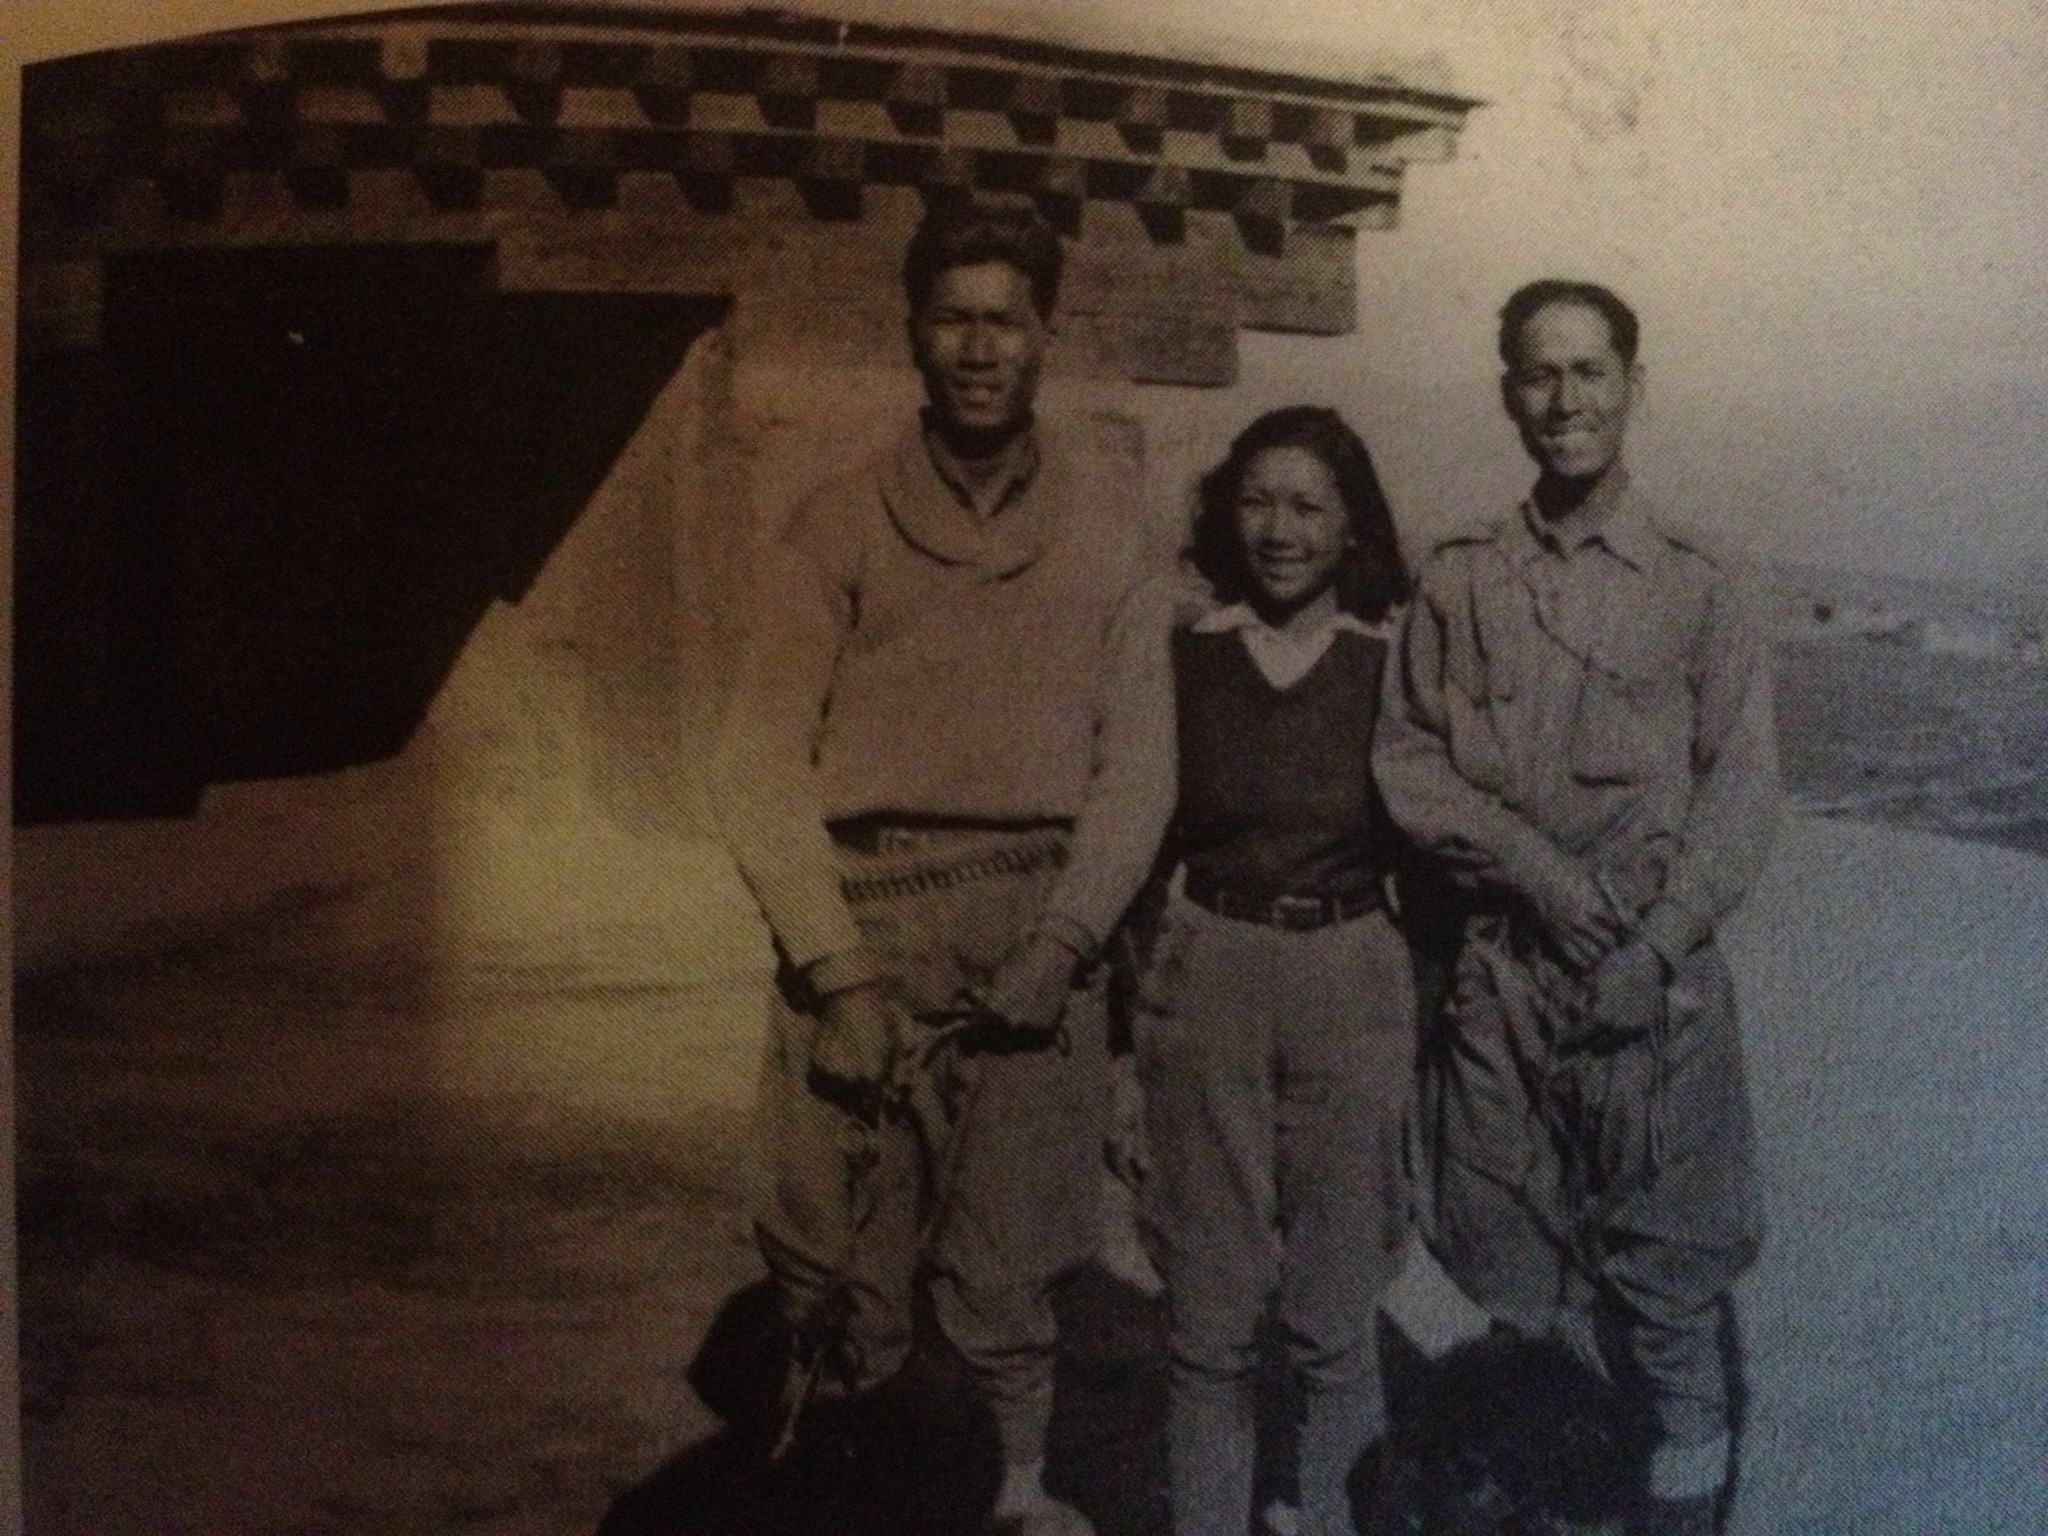 Quentin, Su Lin and Jack Young in Sichuan, 1934.